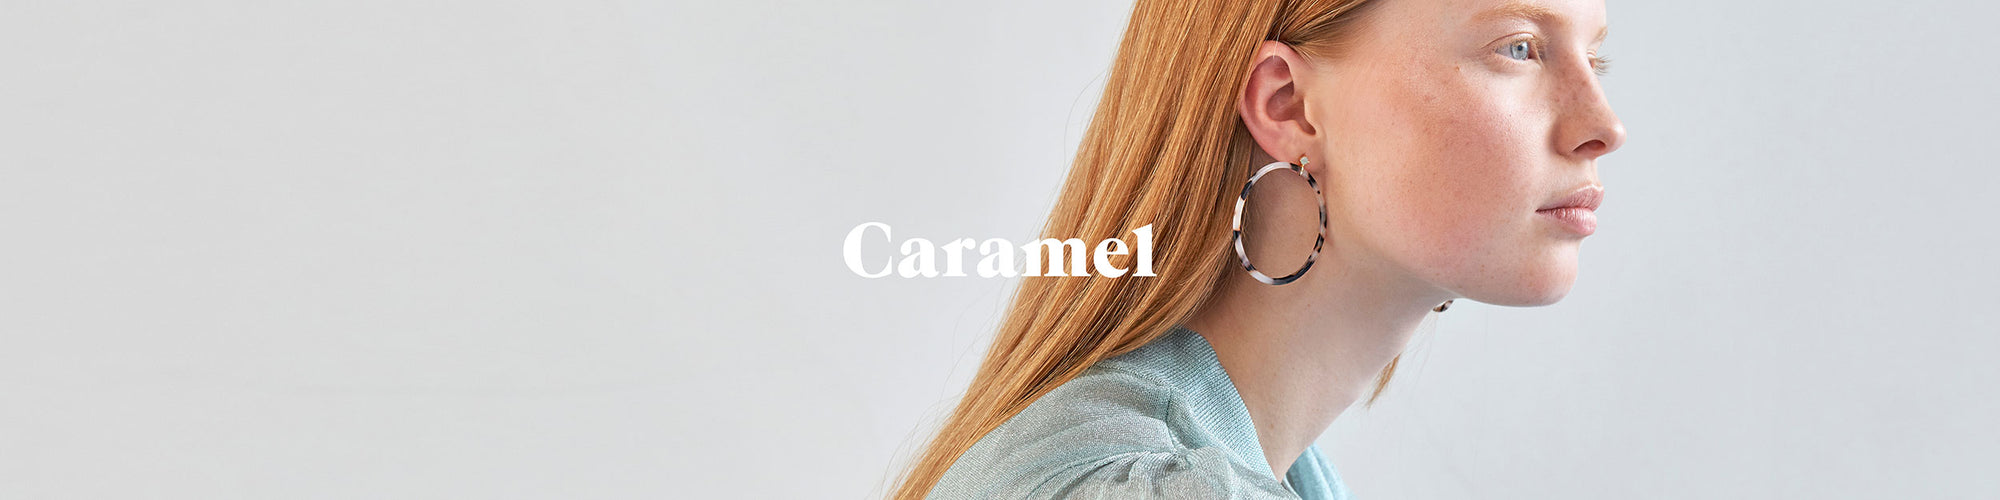 Caramel Collection